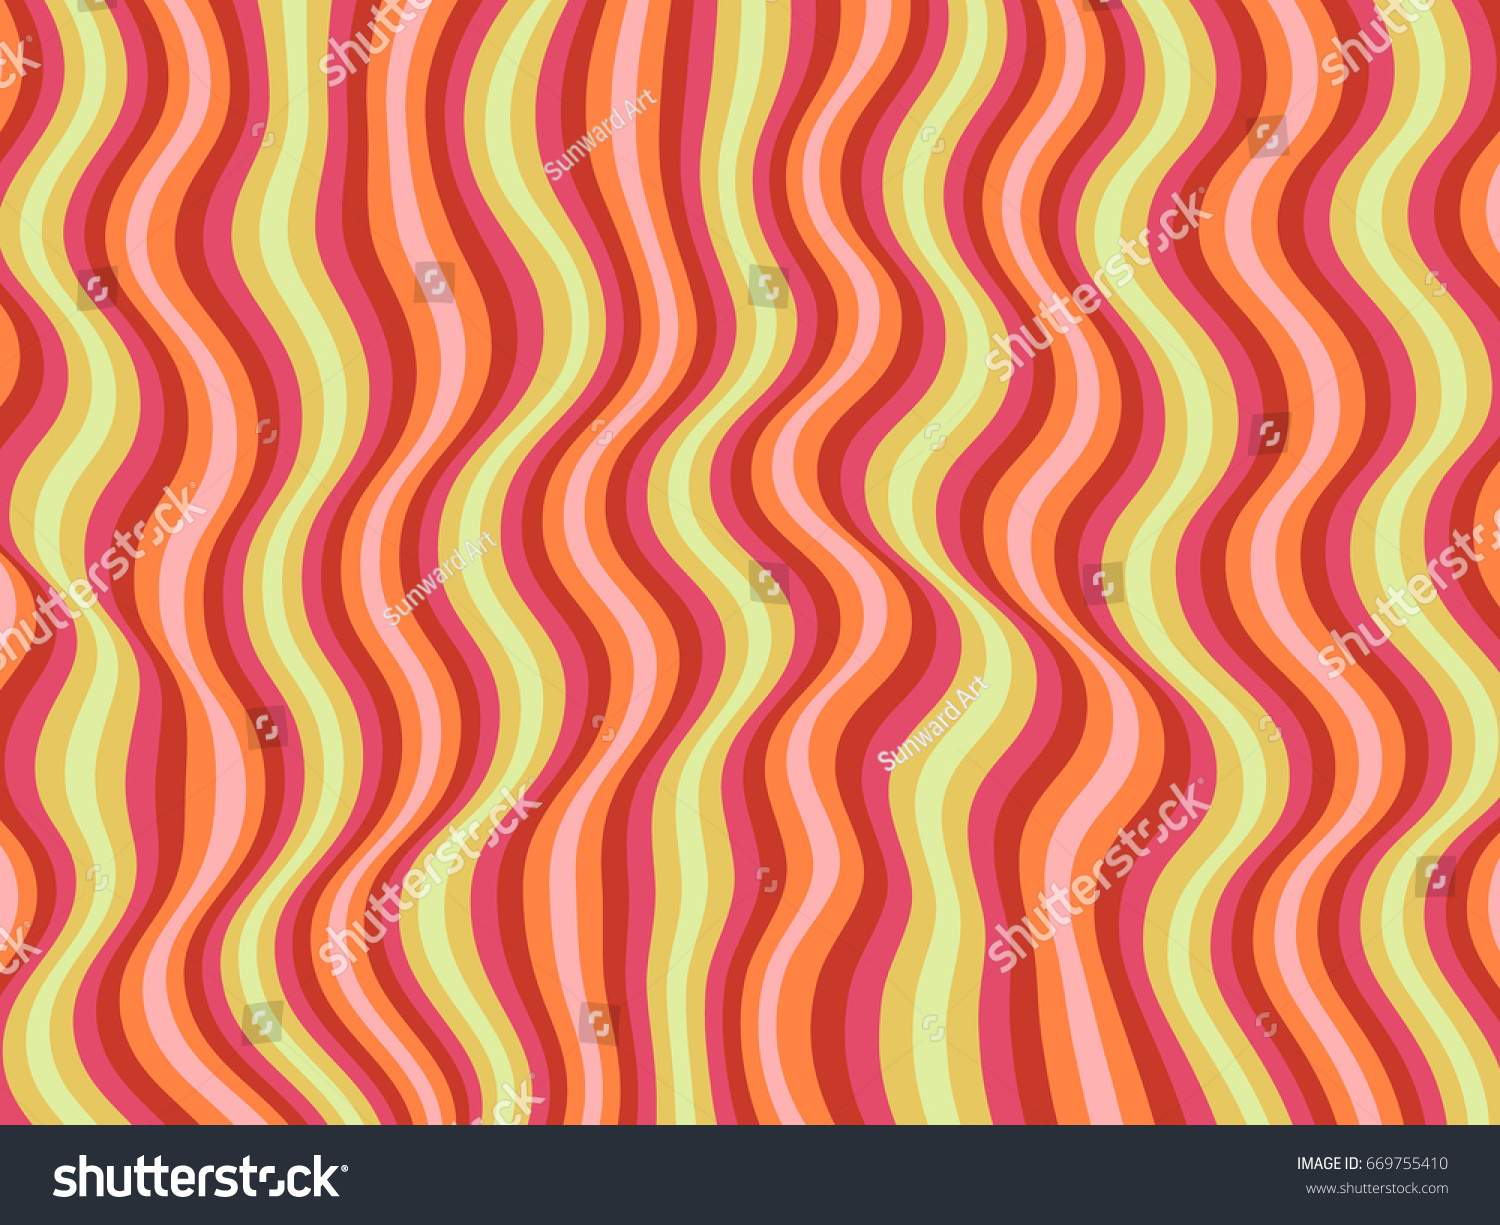 Design banner minimalist - Wavy Lines Vector Curves Ripple Pattern Red And Green Background Minimalist Design